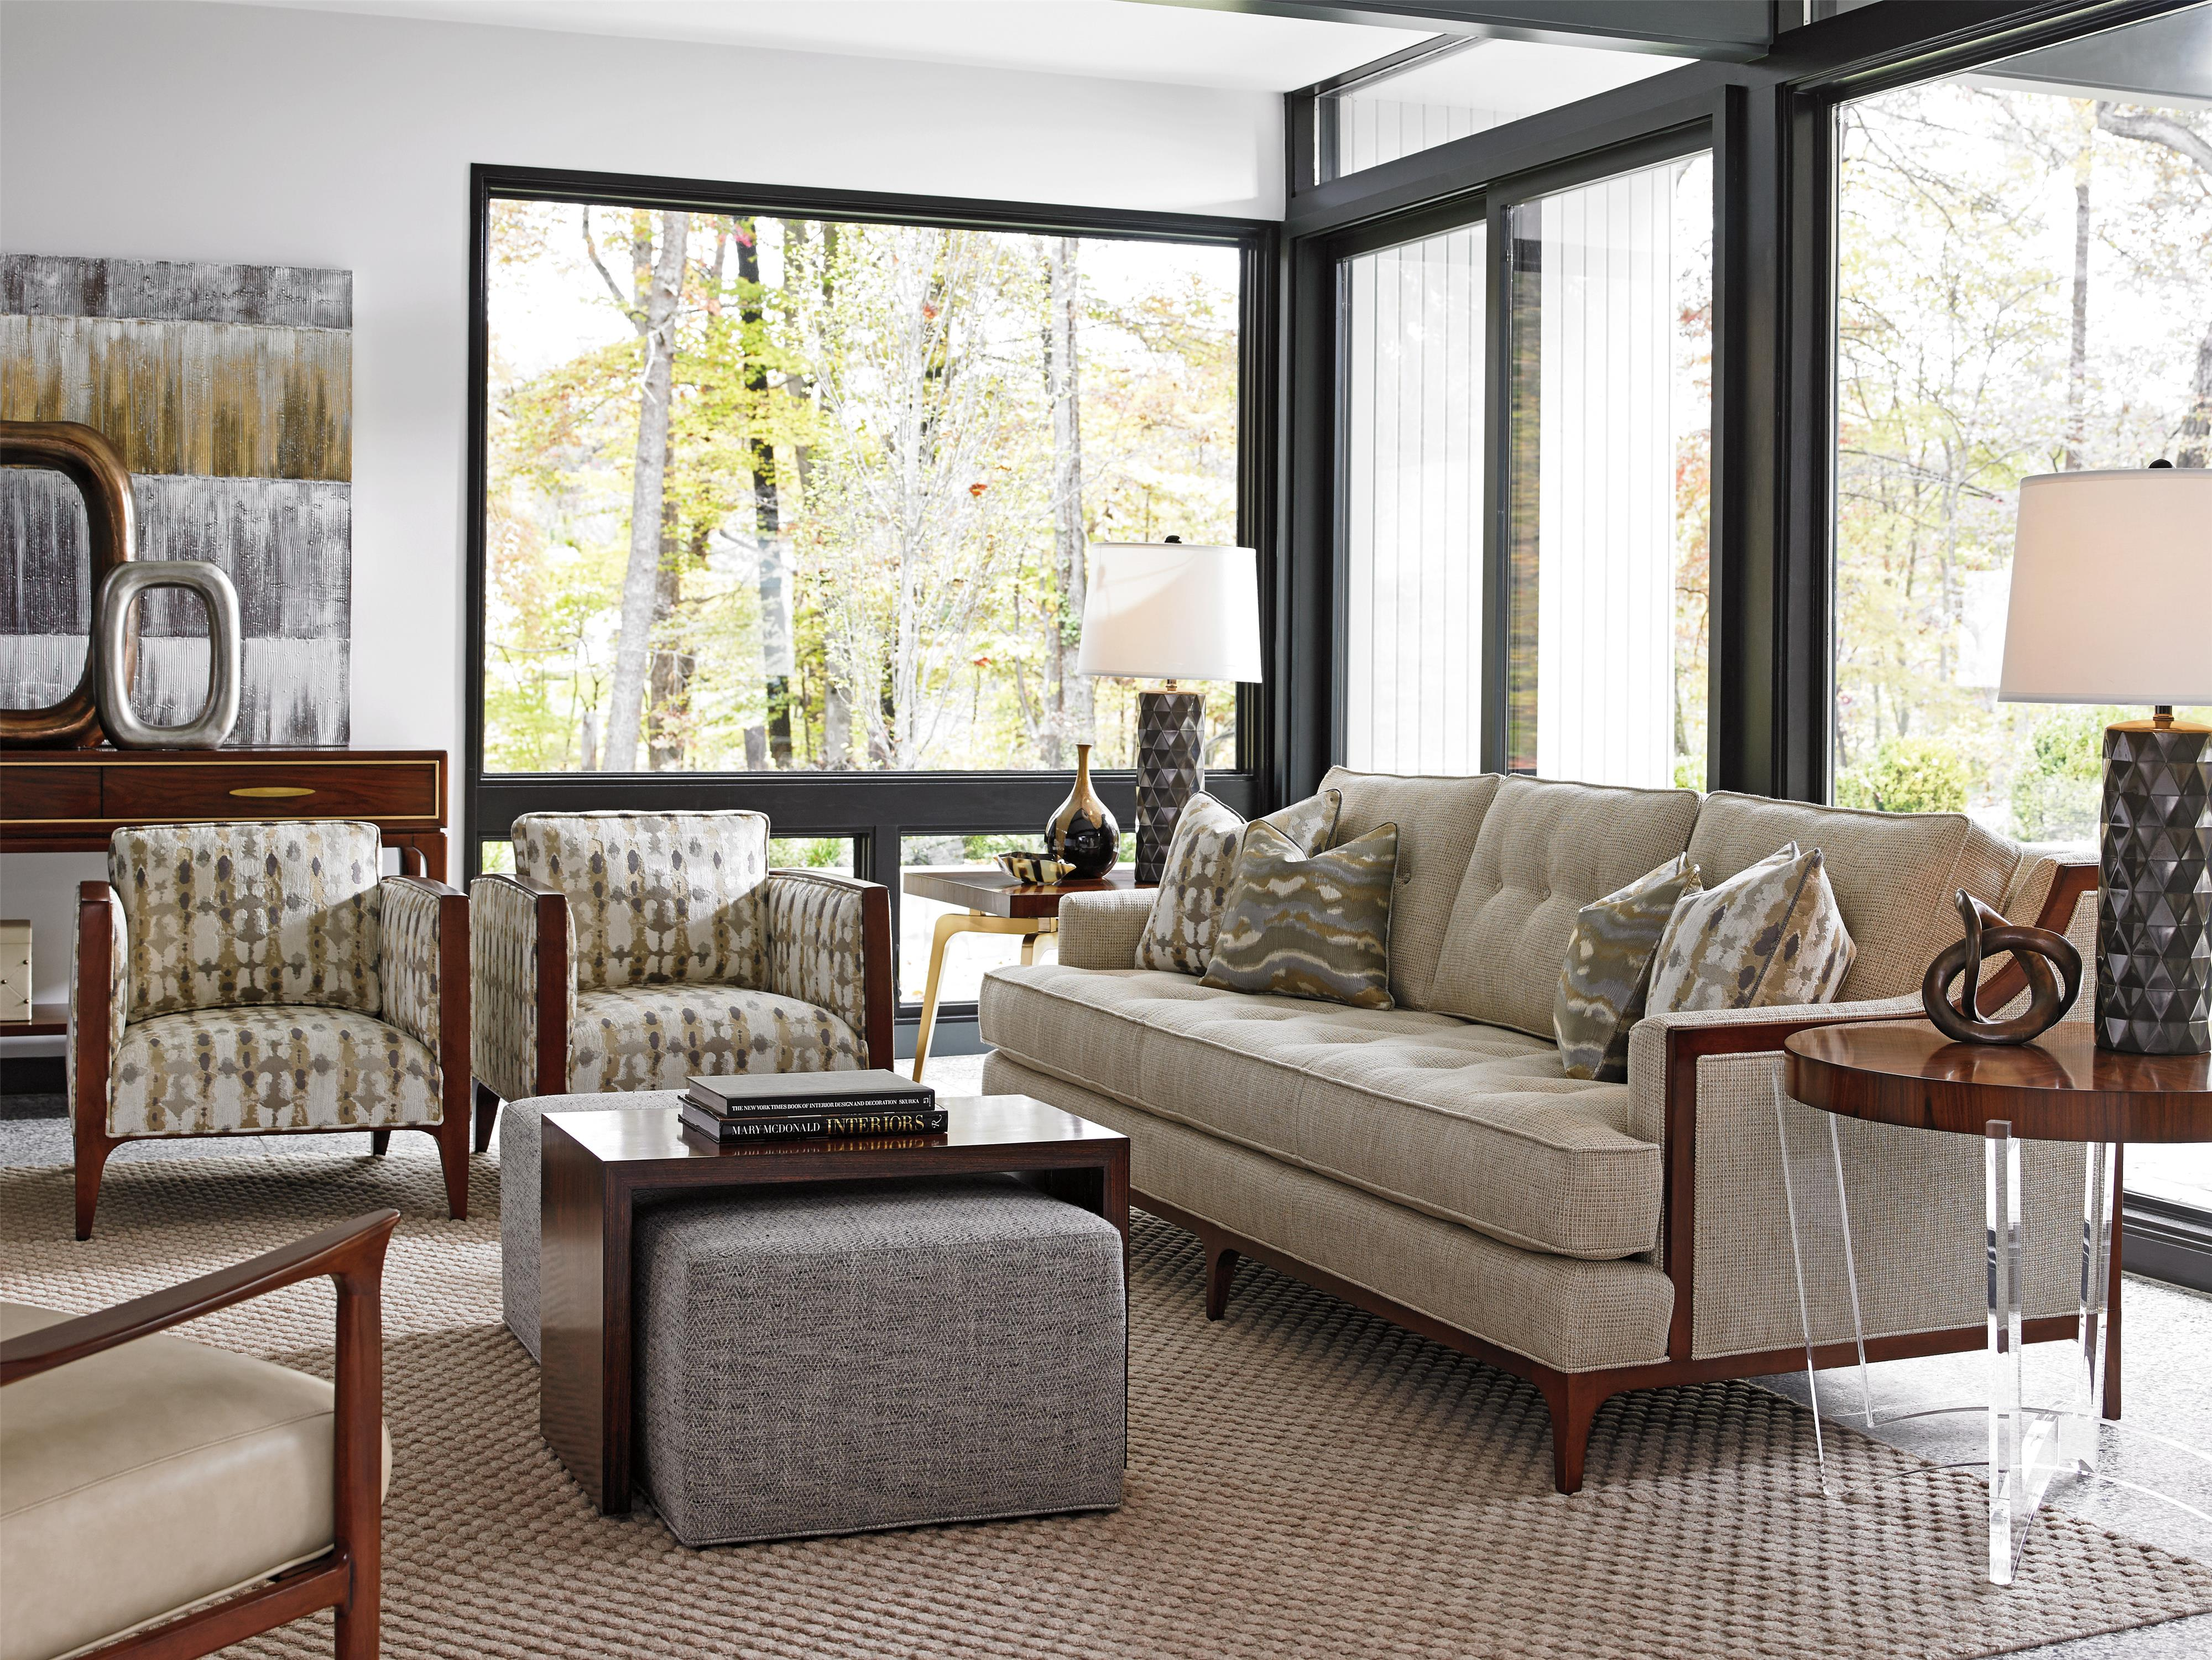 Lexington Take Five 7577 33 Barclay Sofa With Tufting And